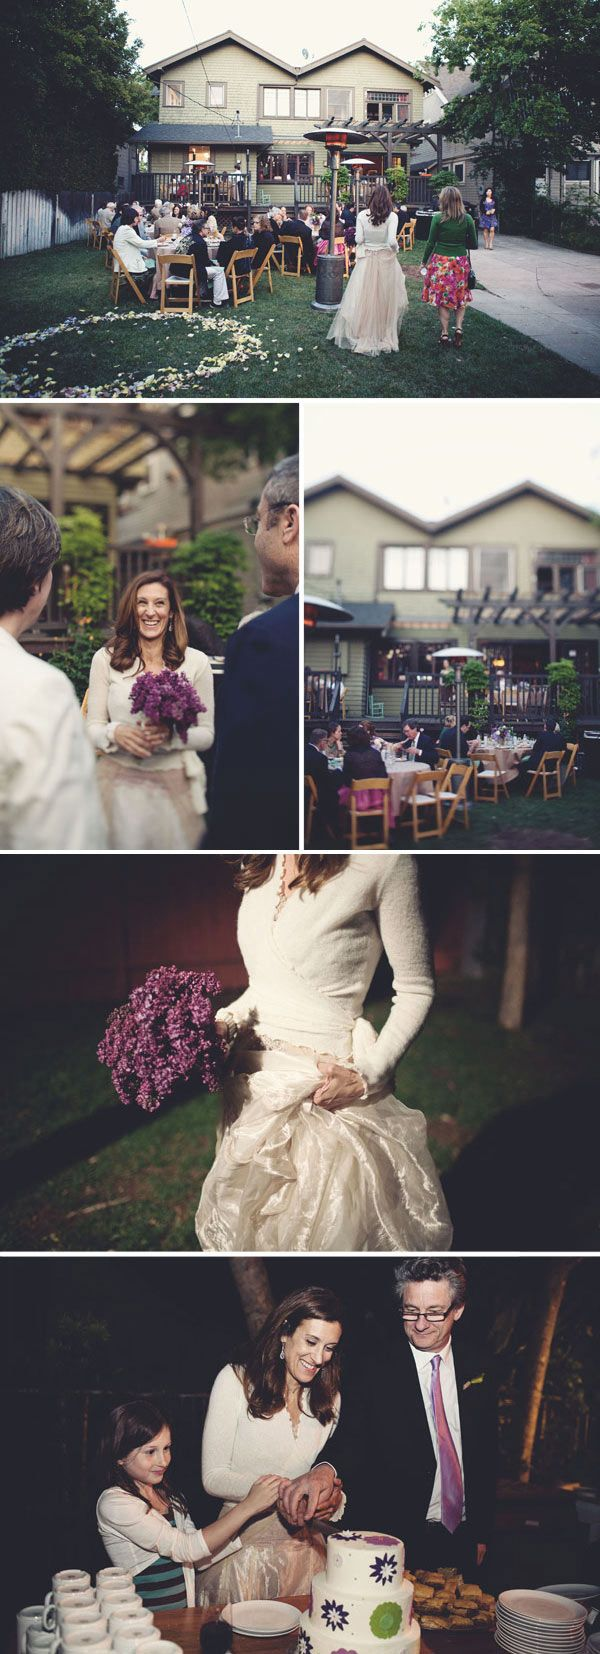 Small backyard wedding: Love the circle of flower petals instead of an arbor to say the vows